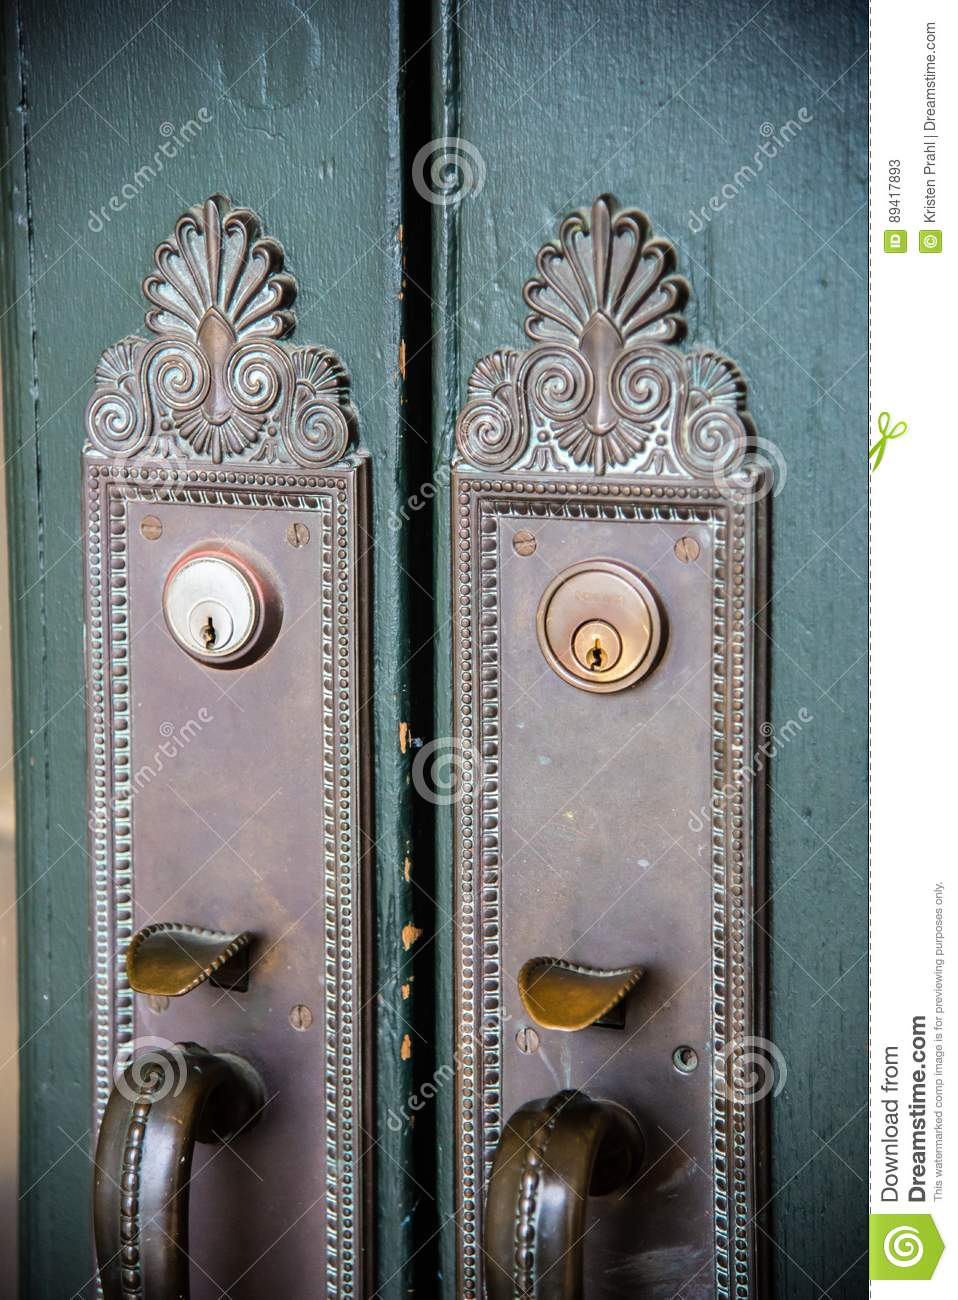 Ornate antique brass door handles